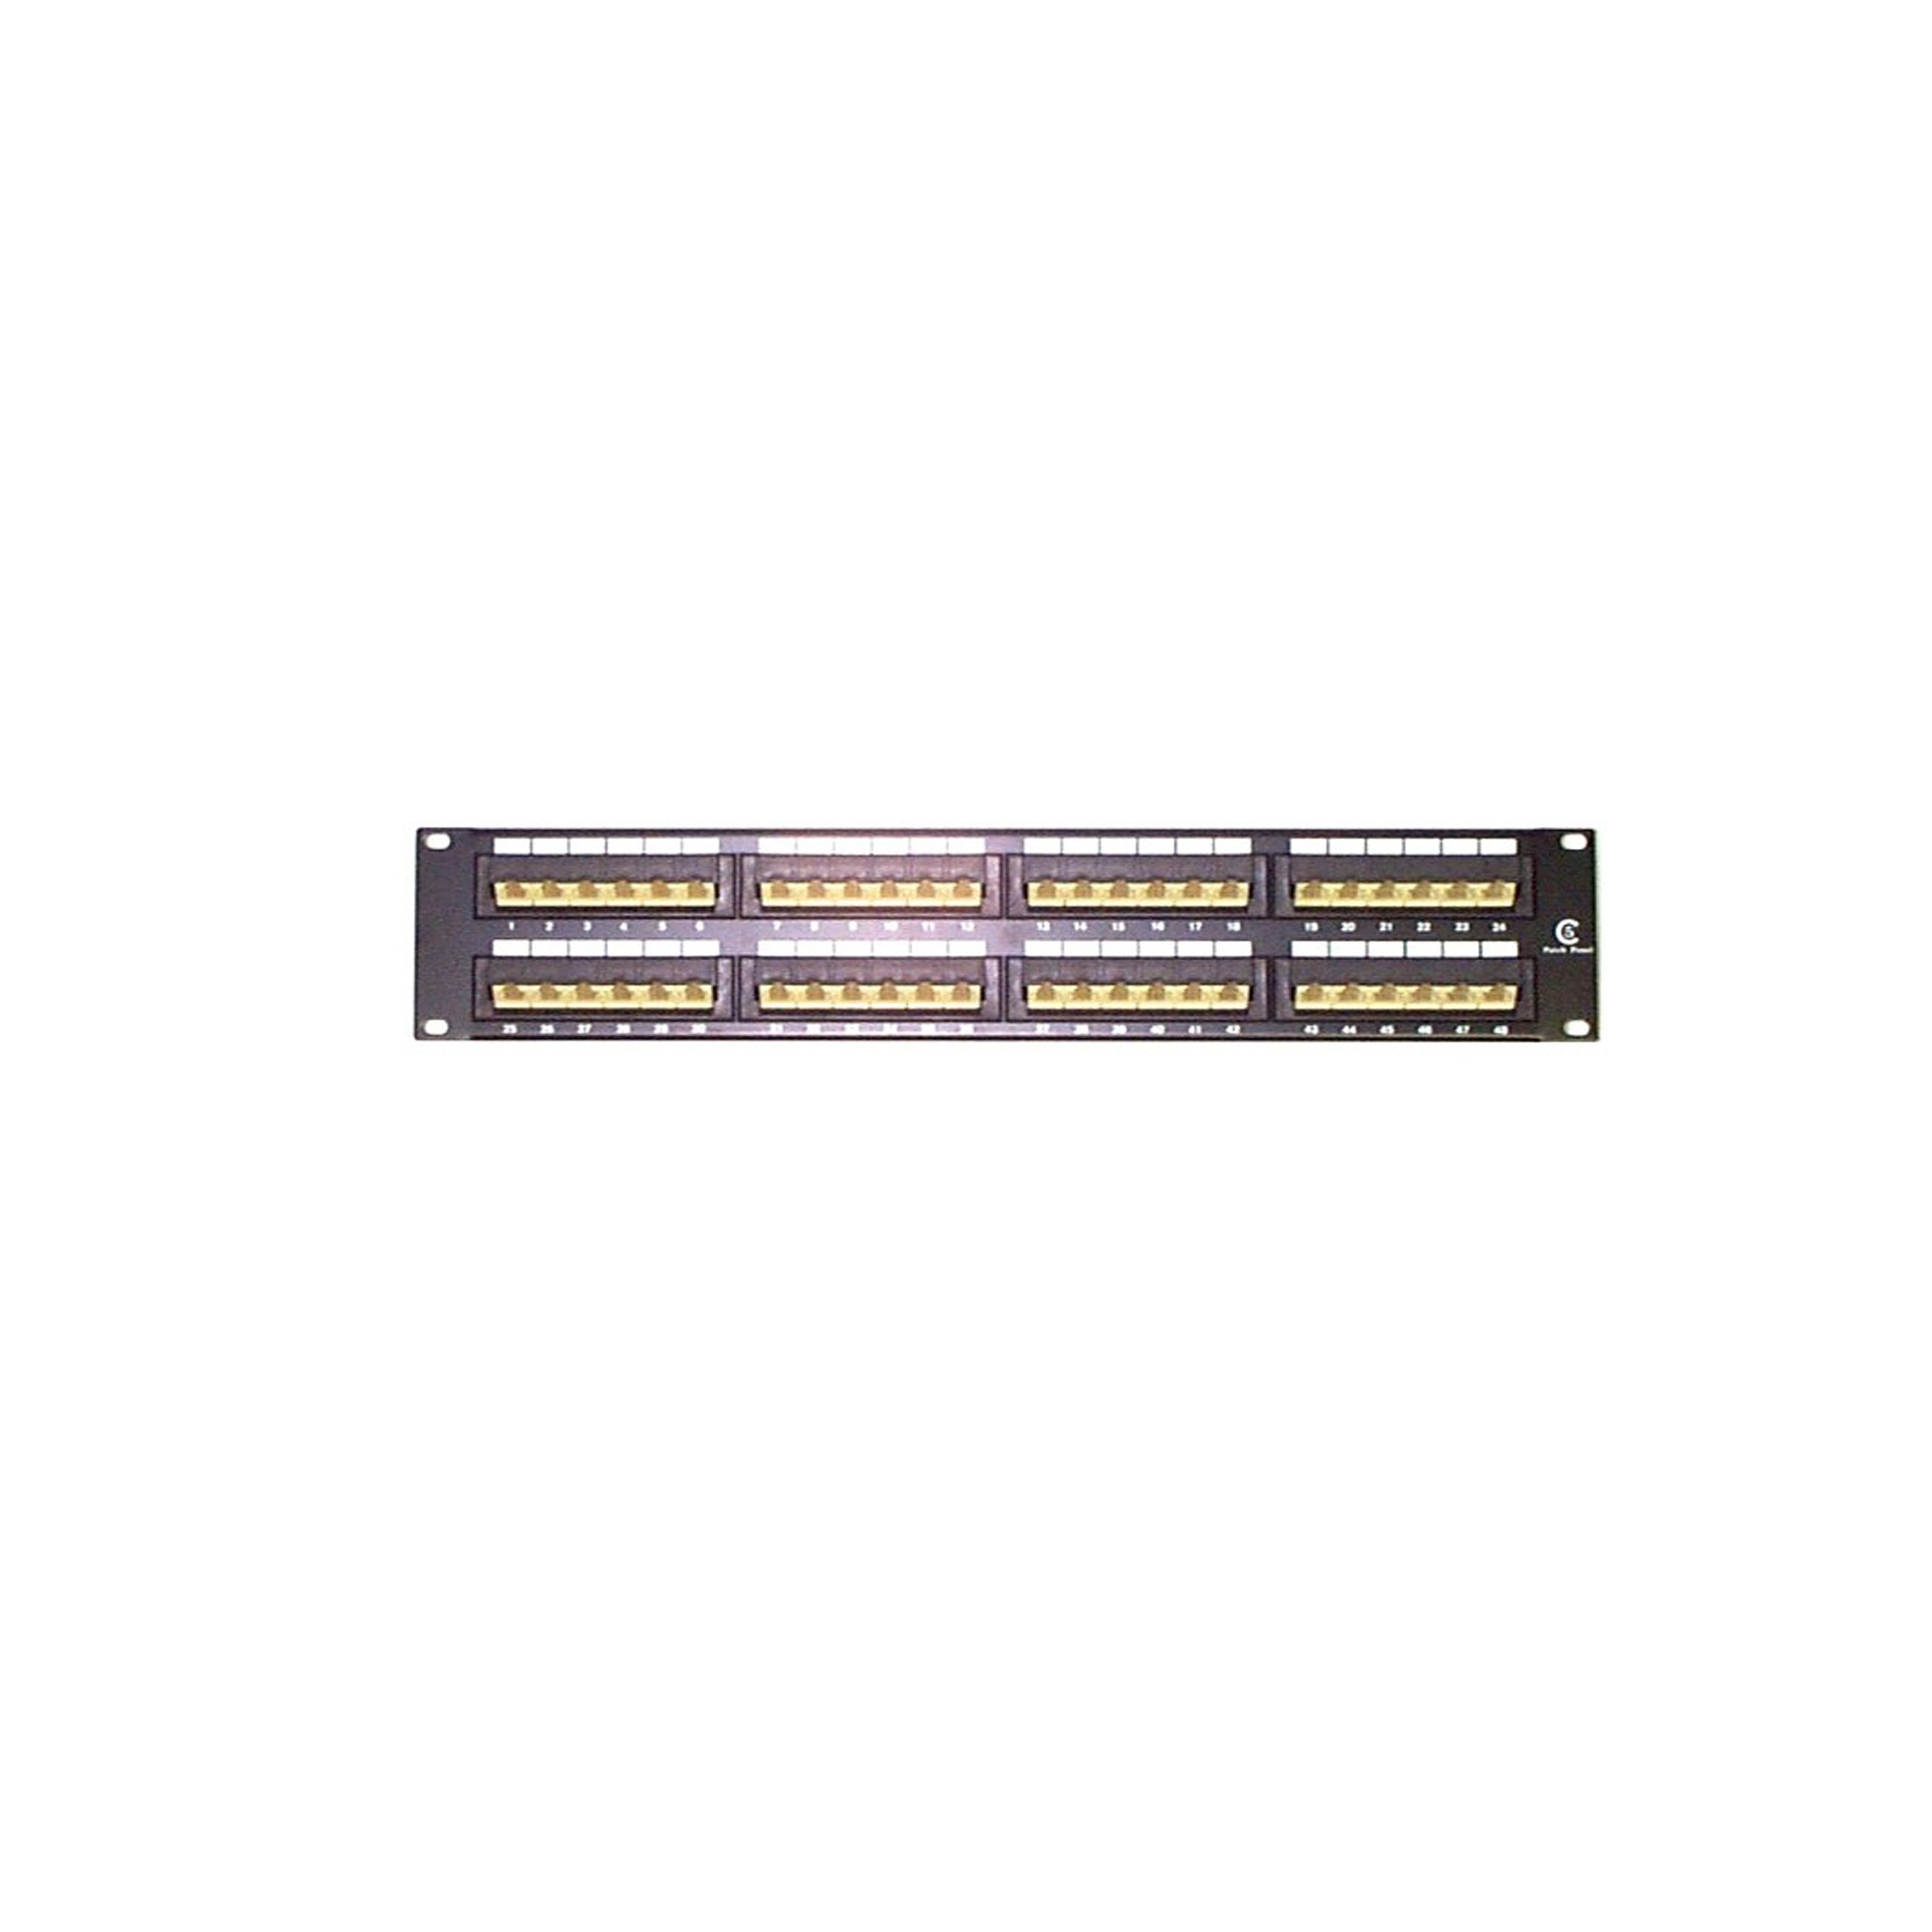 StarTech.com 2U 48 Port Rackmount Cat5e 110 Patch Panel - 45 Degree by StarTech